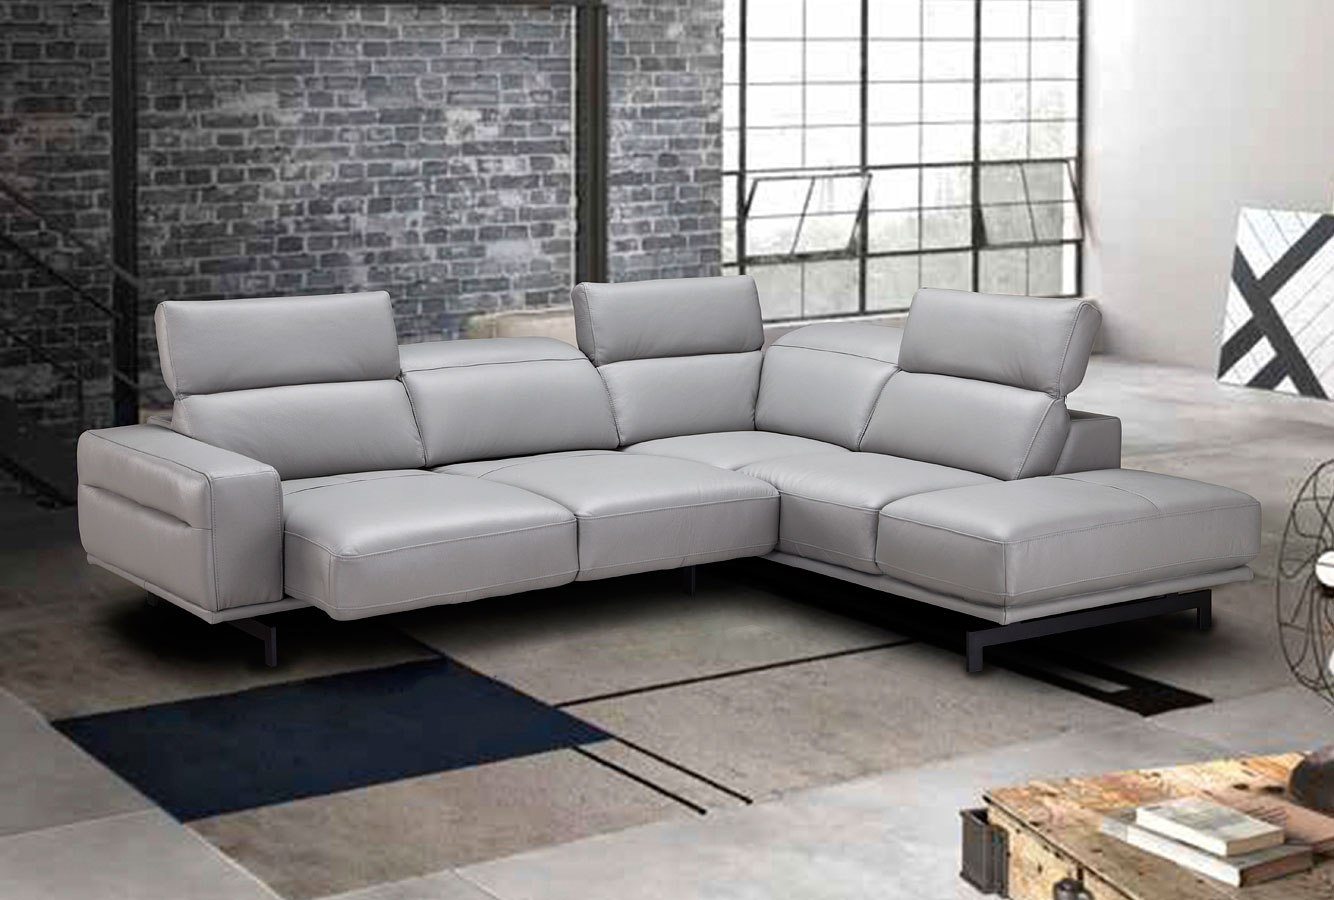 Davenport Right Chaise Sectional Light Grey By Jm